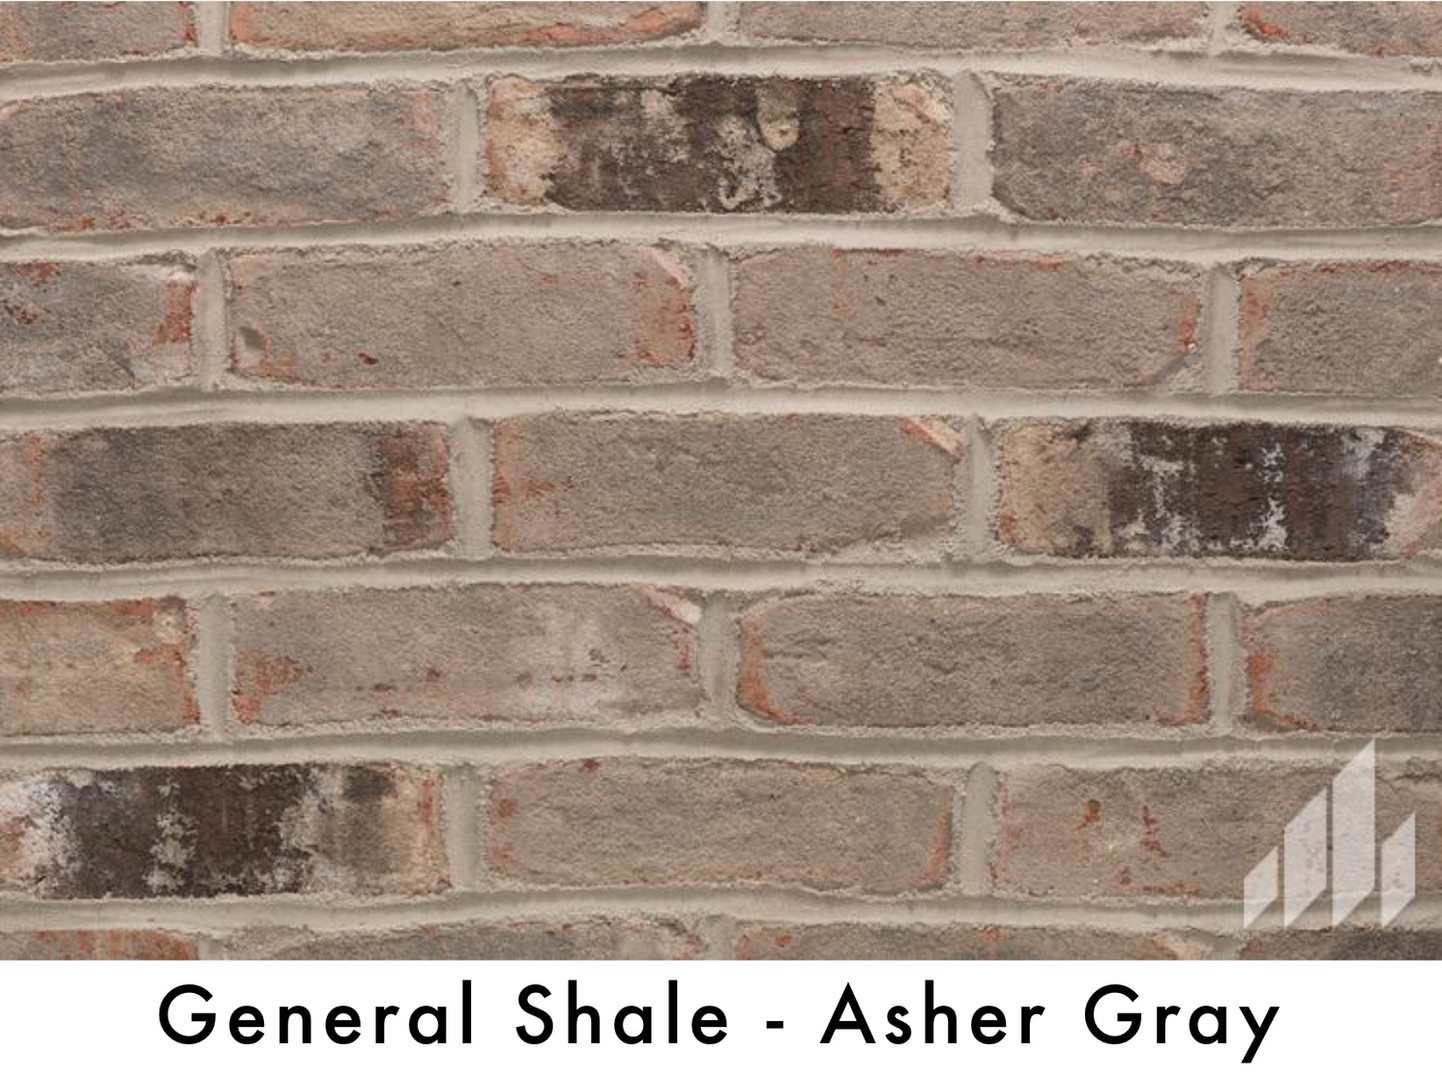 General Shale - Asher Gray